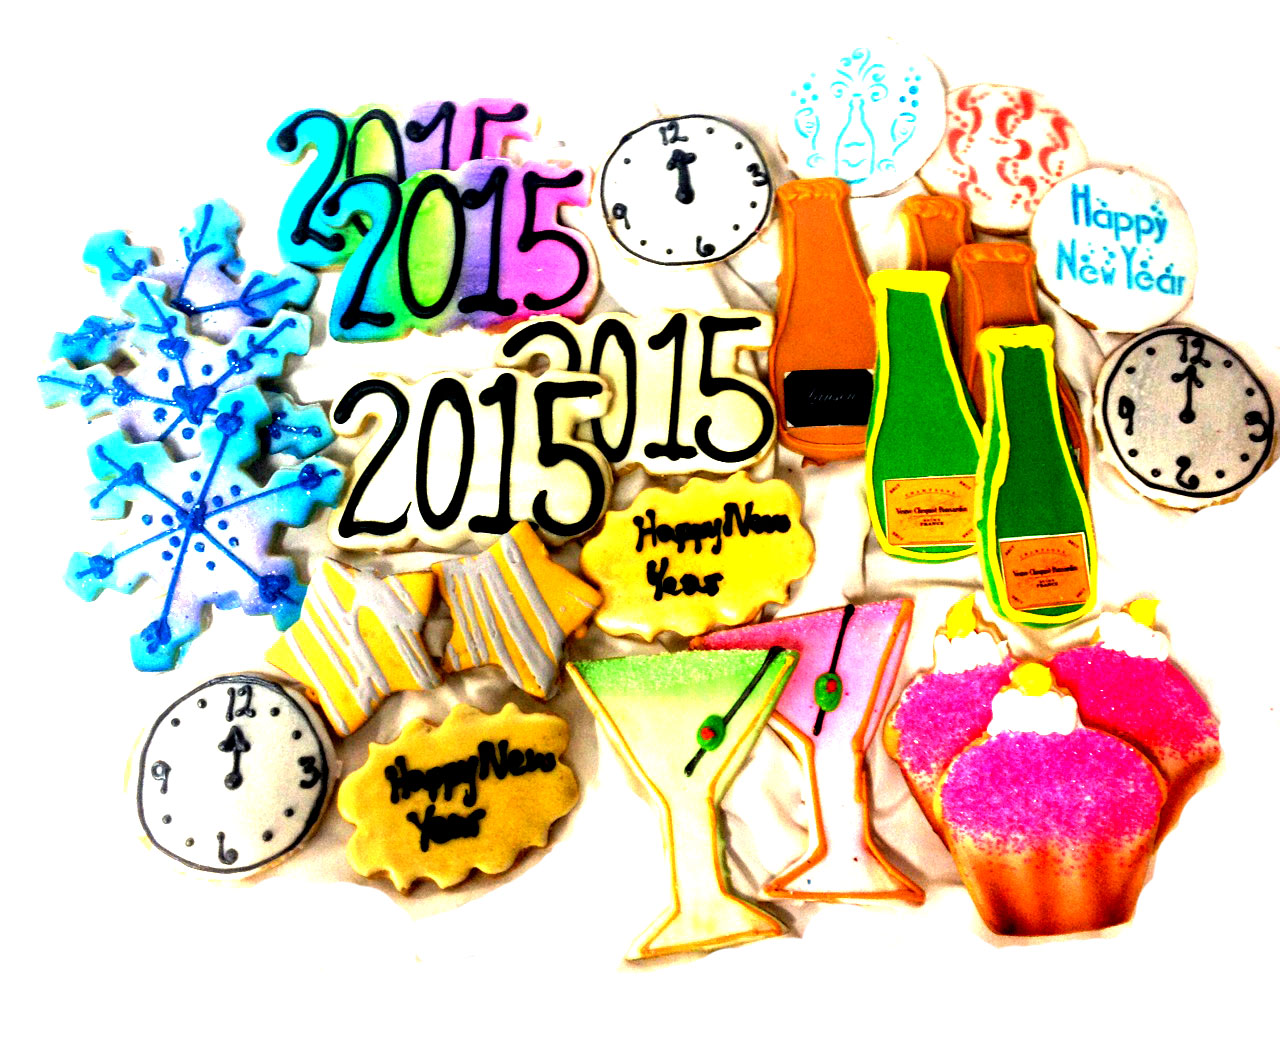 New year-1